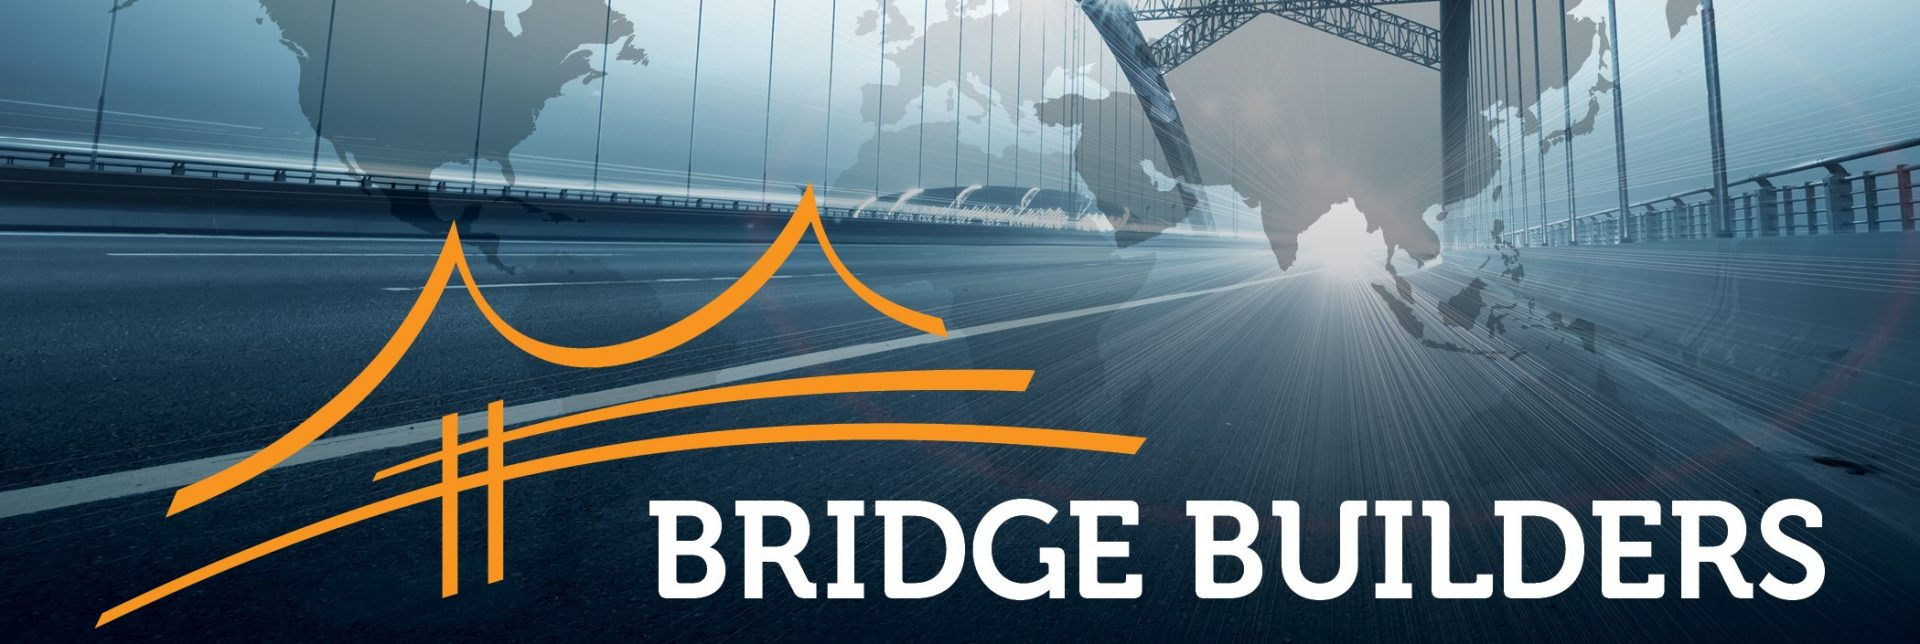 Bridge builders annual ism conference Where to find a builder